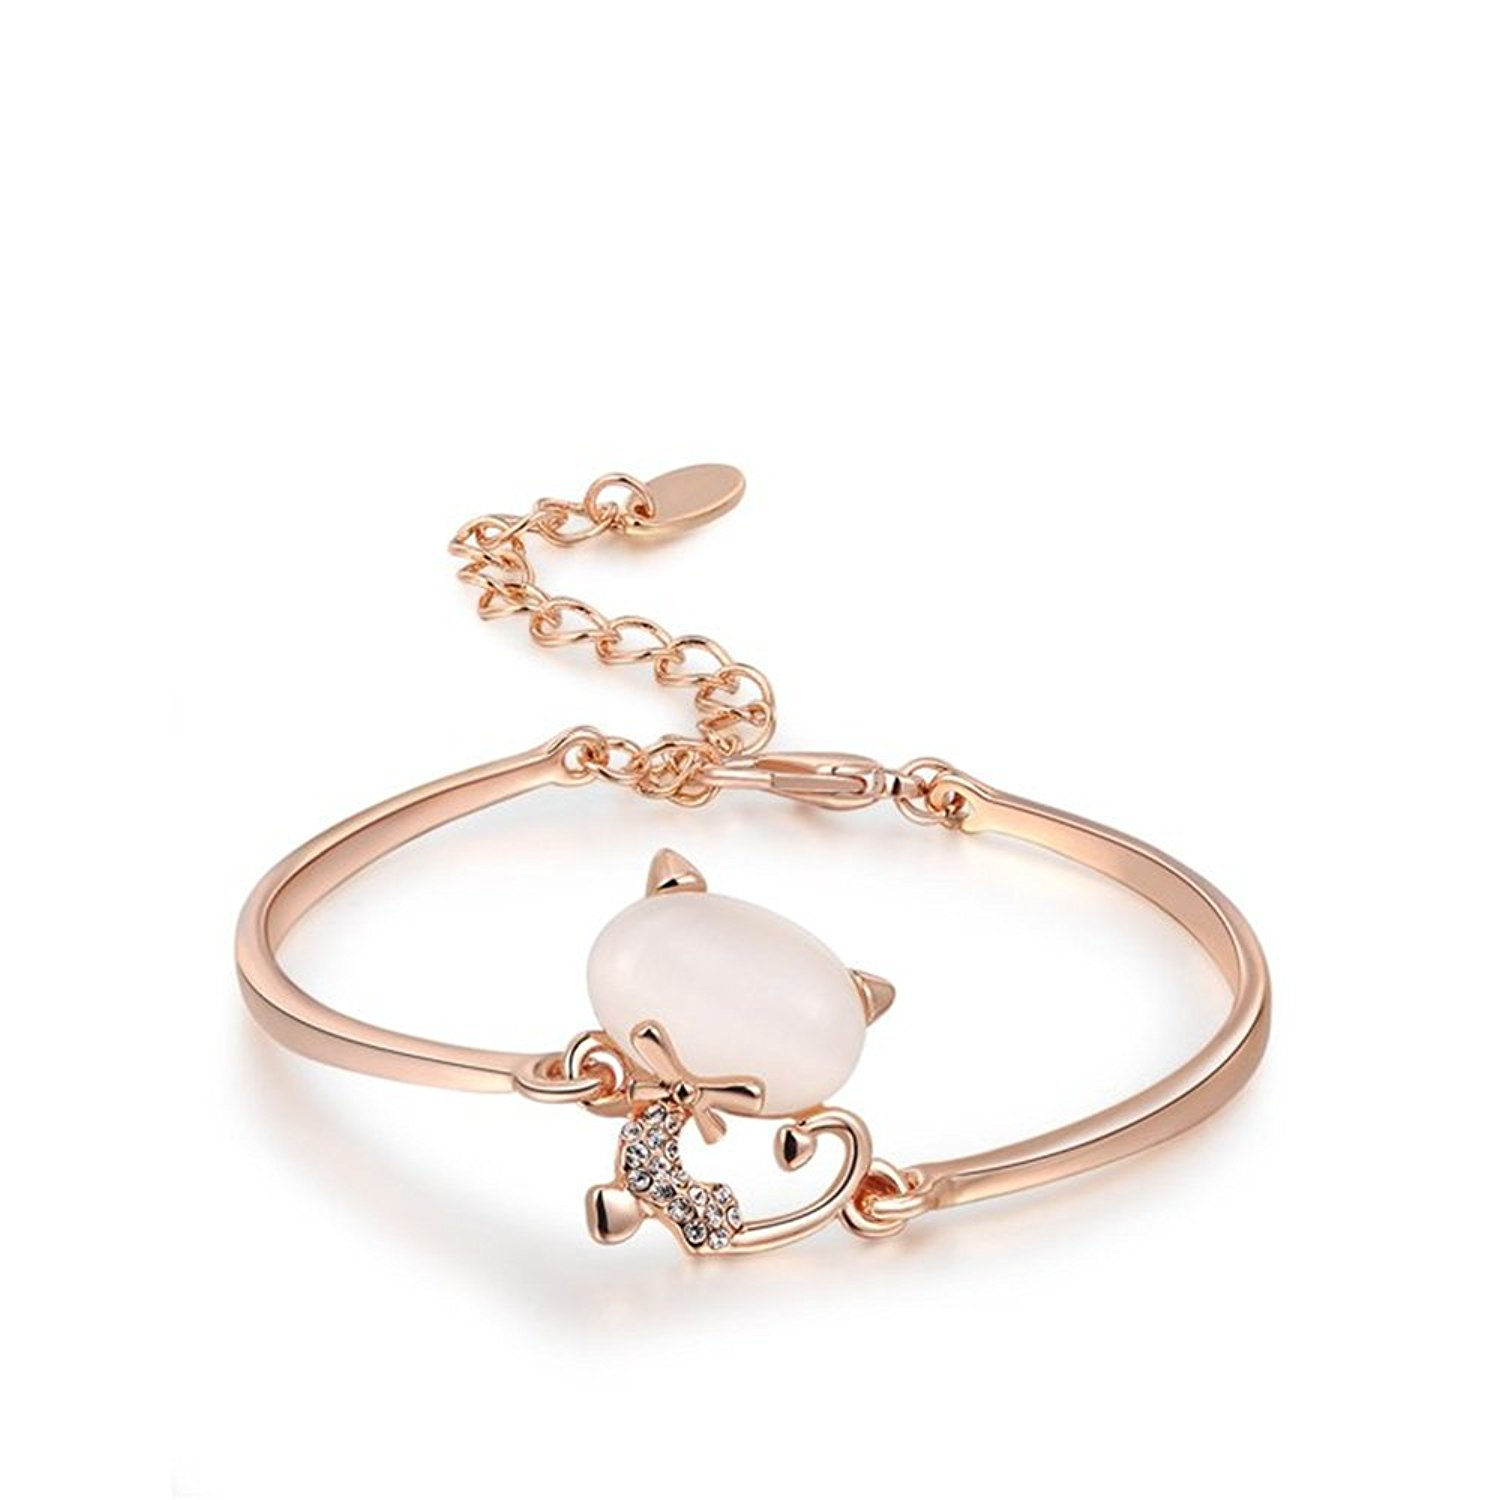 Opal Rose Gold Bangle Bracelet